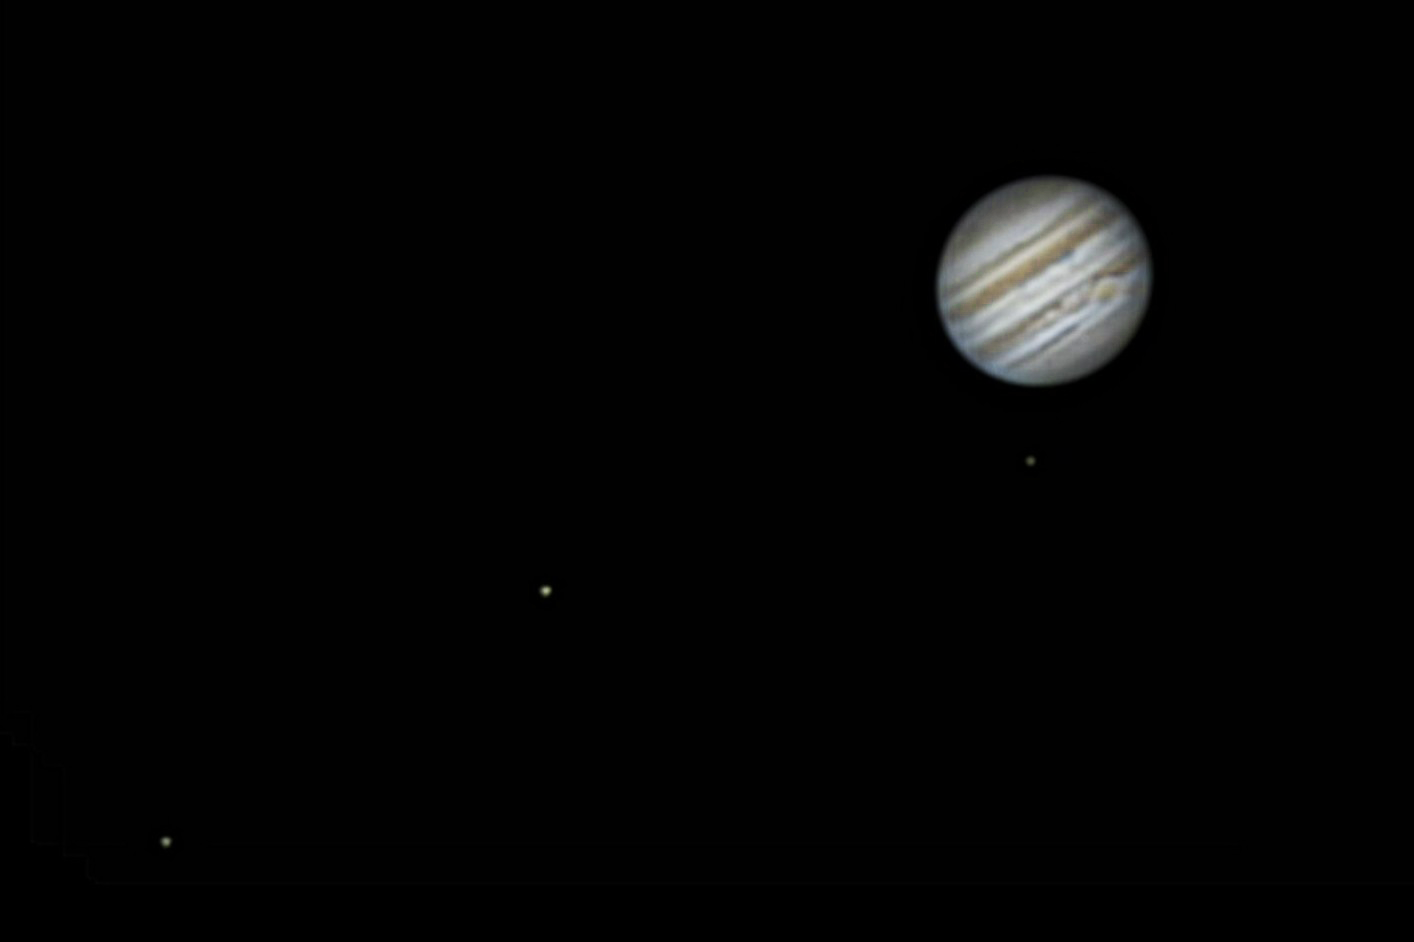 Jupiter with 3 moons.